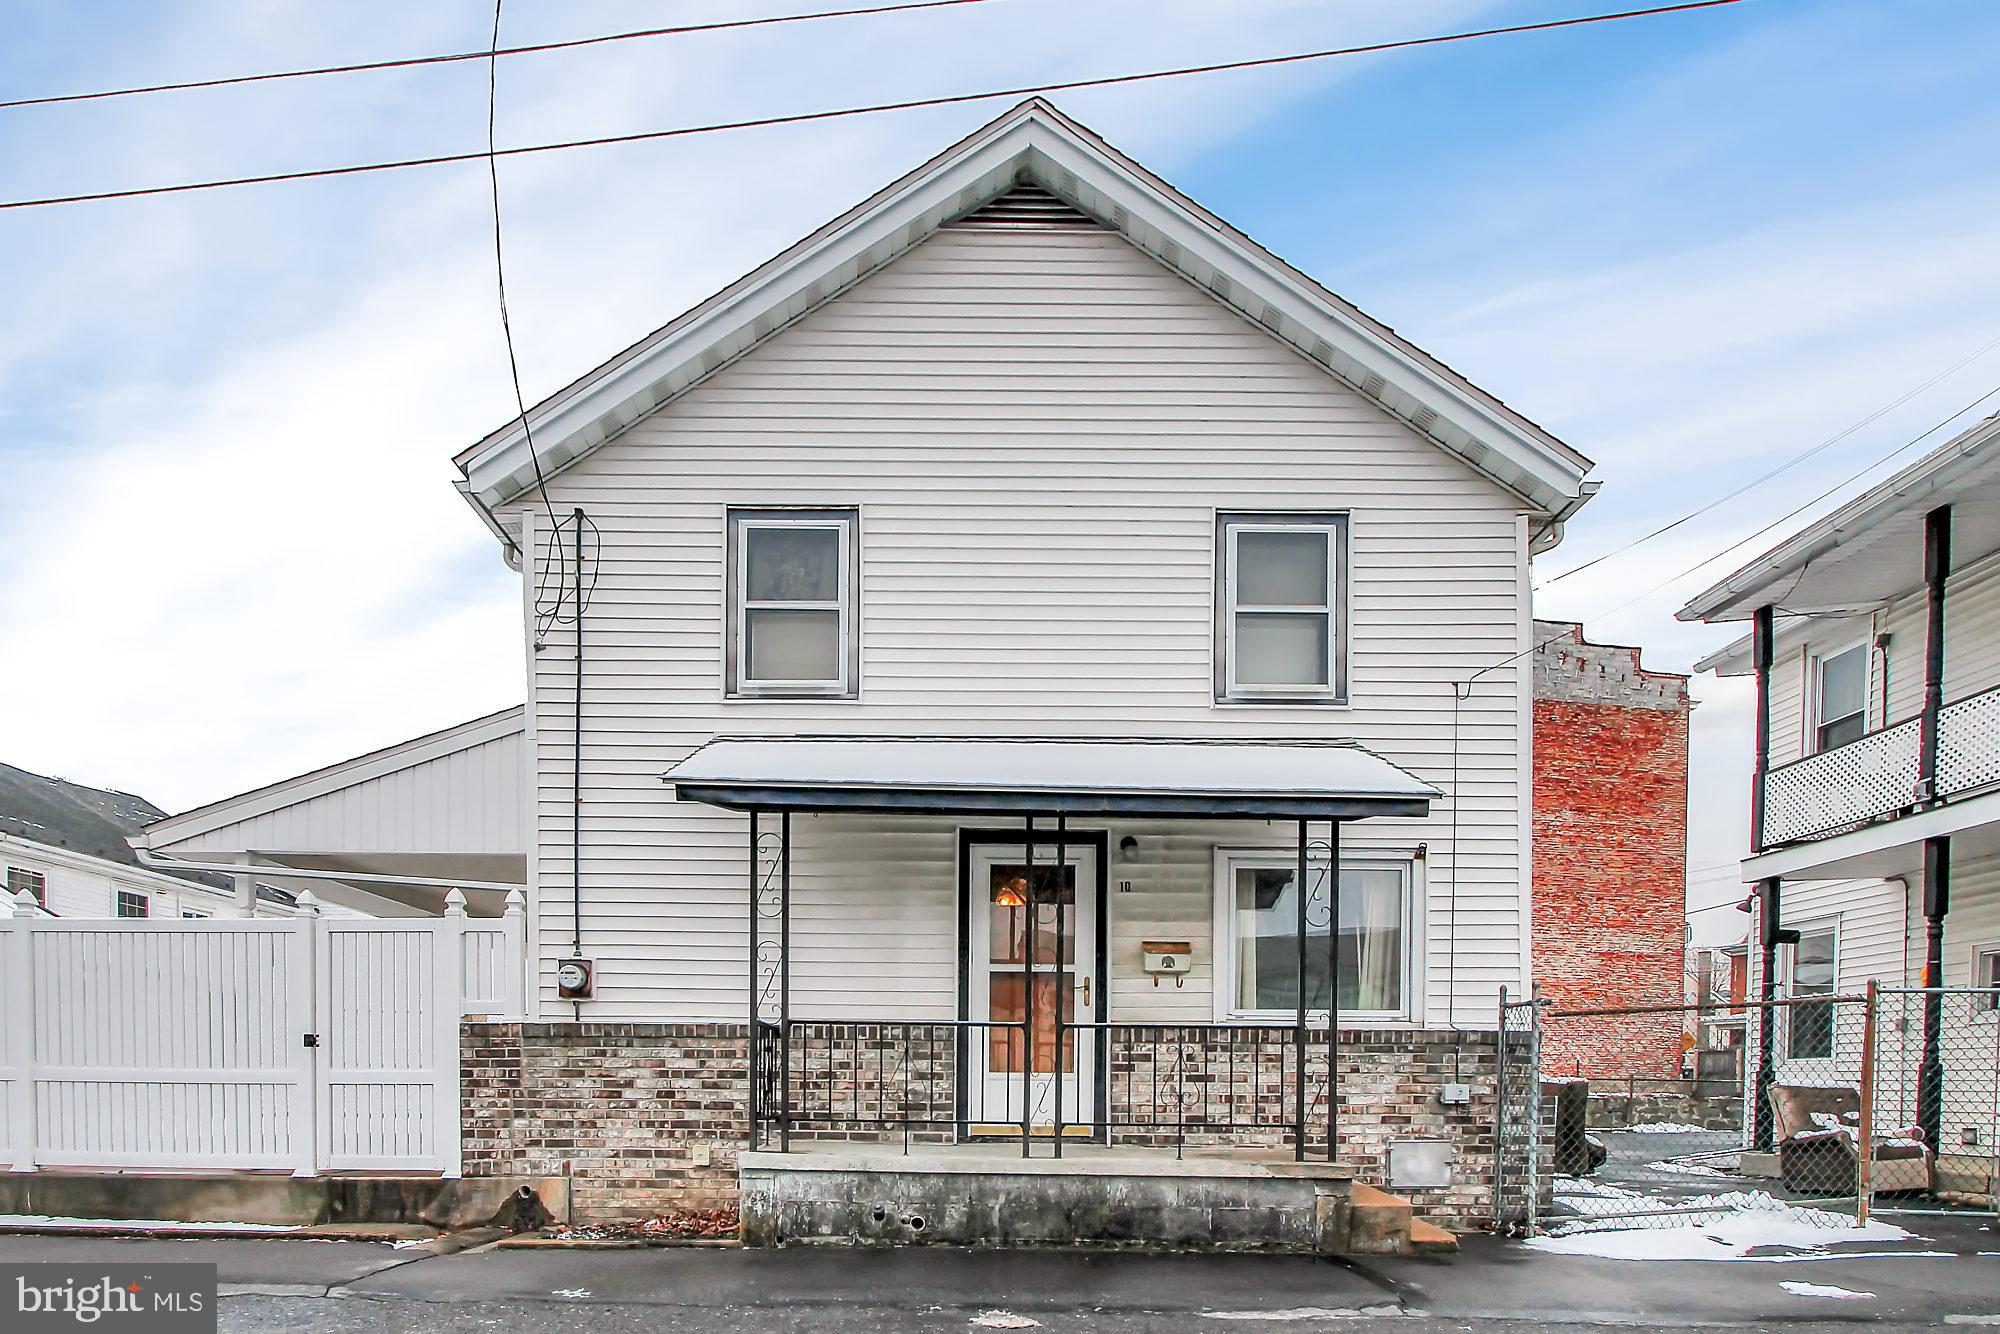 10 S CRESCENT STREET, TREMONT, PA 17981